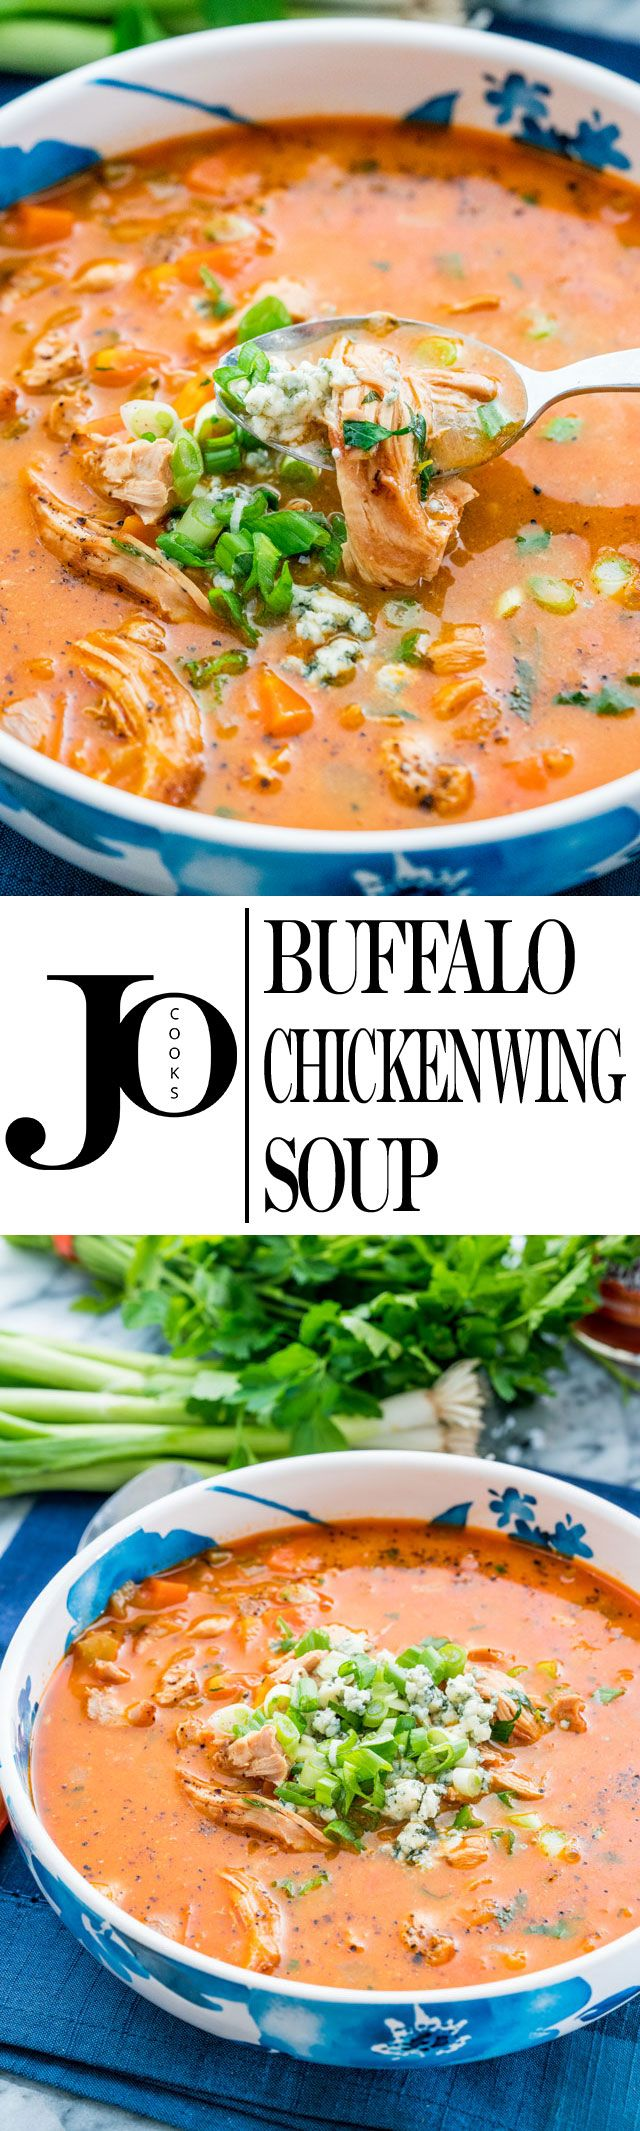 This Buffalo Chicken Wing Soup tastes just like buffalo chicken wings but in a creamy delicious soup. Bold flavors, easy to whip up, it will blow your mind!